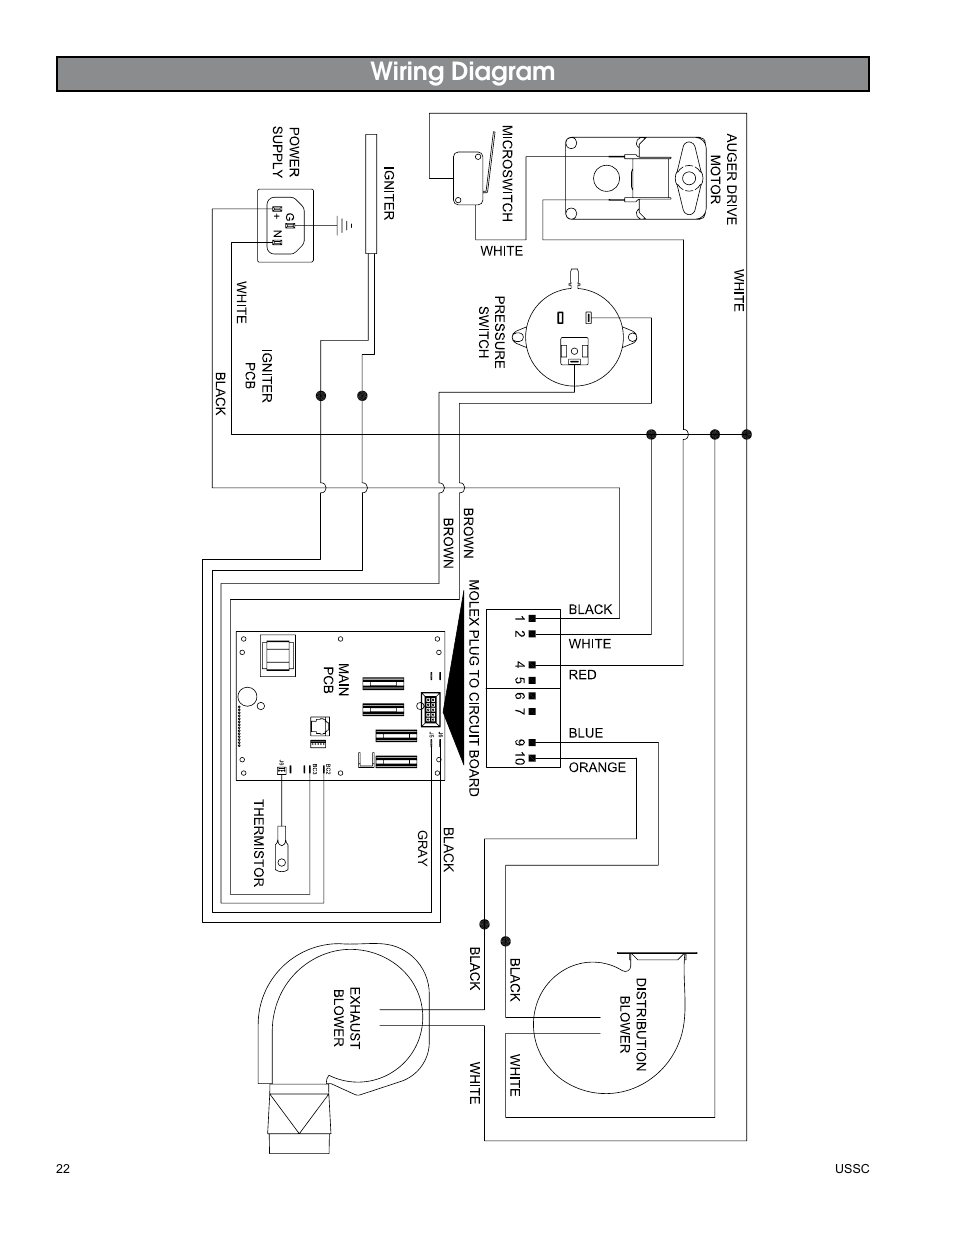 united-states-stove-company-king_ashley-pellet-stove-5500m-page22 King Pellet Stove Wiring Diagram on pellet stove heat recovery, pellet stoves how they work, pellet stove fuses, gas stove wiring diagrams, pellet stove control panel, pellet stove how it works, pellet burning stoves function diagrams, pellet stove inserts, pellet stove exhaust system, pellet stove dimensions, pellet stove igniter, pellet stove thermostat wiring, pellet stoves in-house, pellet stove layouts, pellet stove troubleshooting, pellet stove pellets, pellet stove maintenance, pellet stove installation, pellet stove parts, pellet stove window unit,